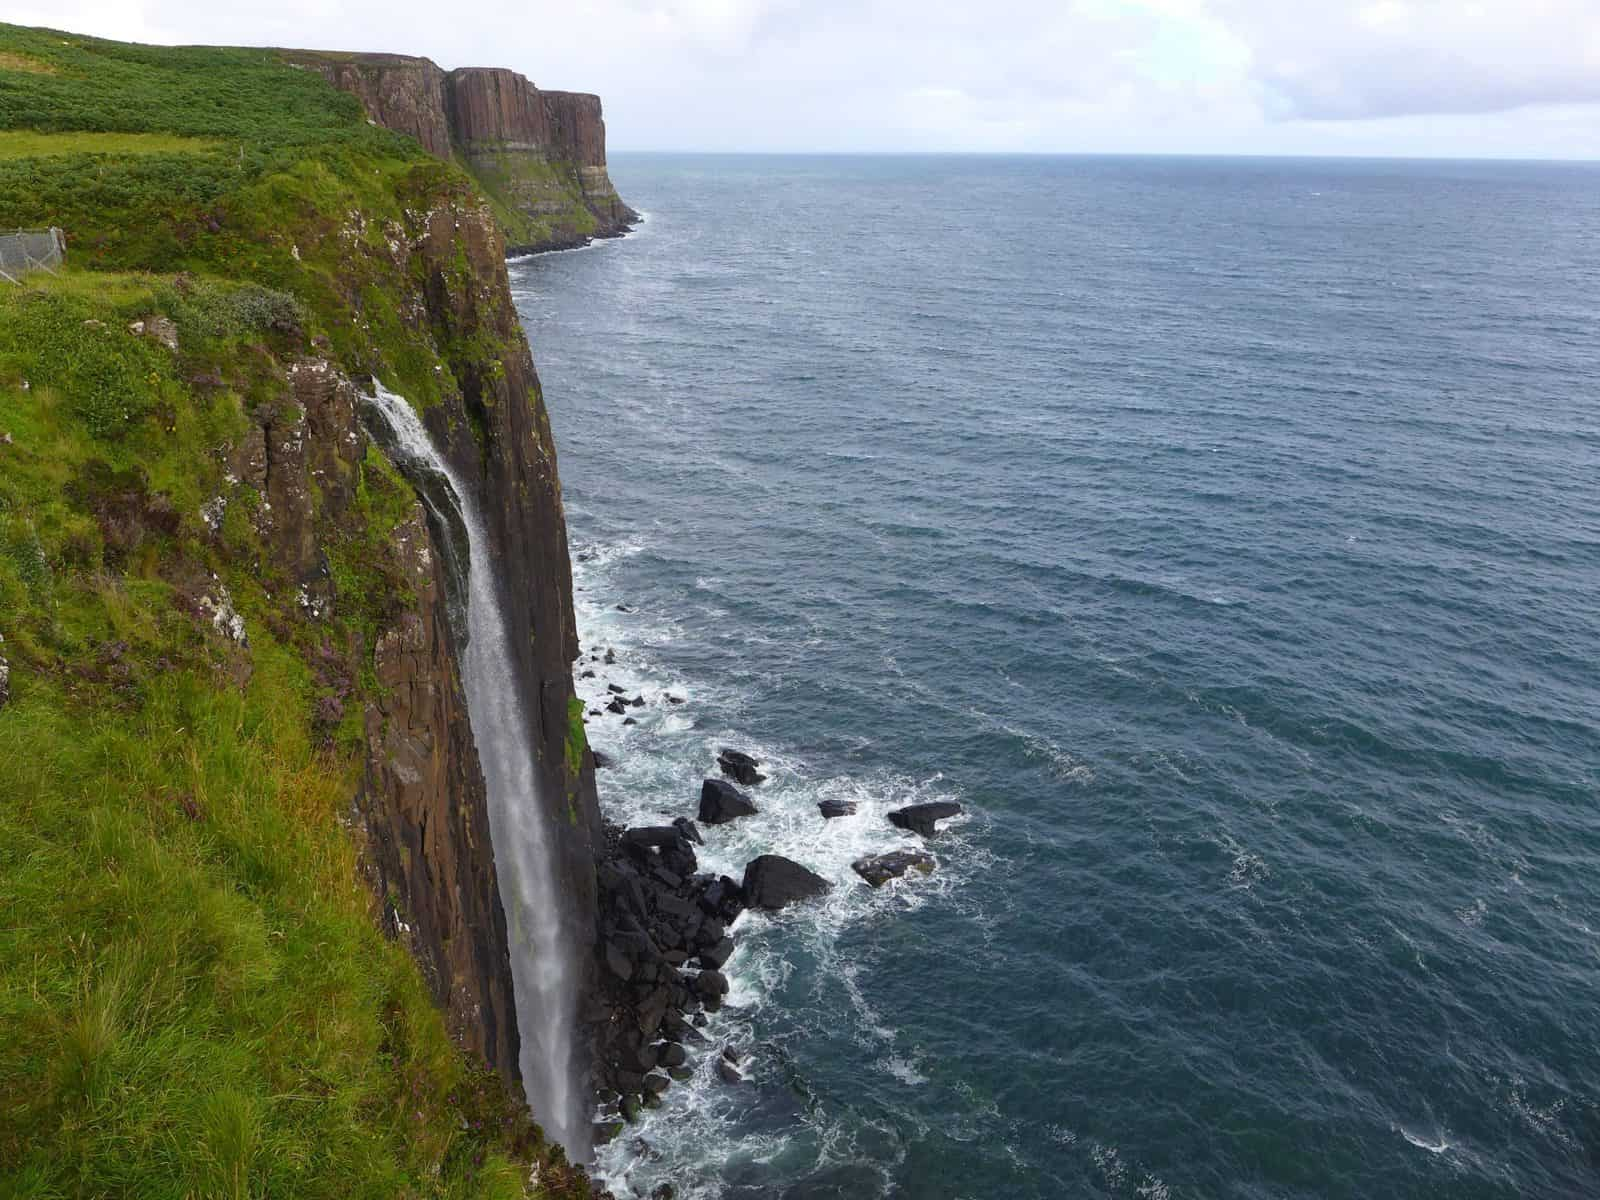 Where to go in Scotland - Kilt Rock and Mealt Falls on Skye